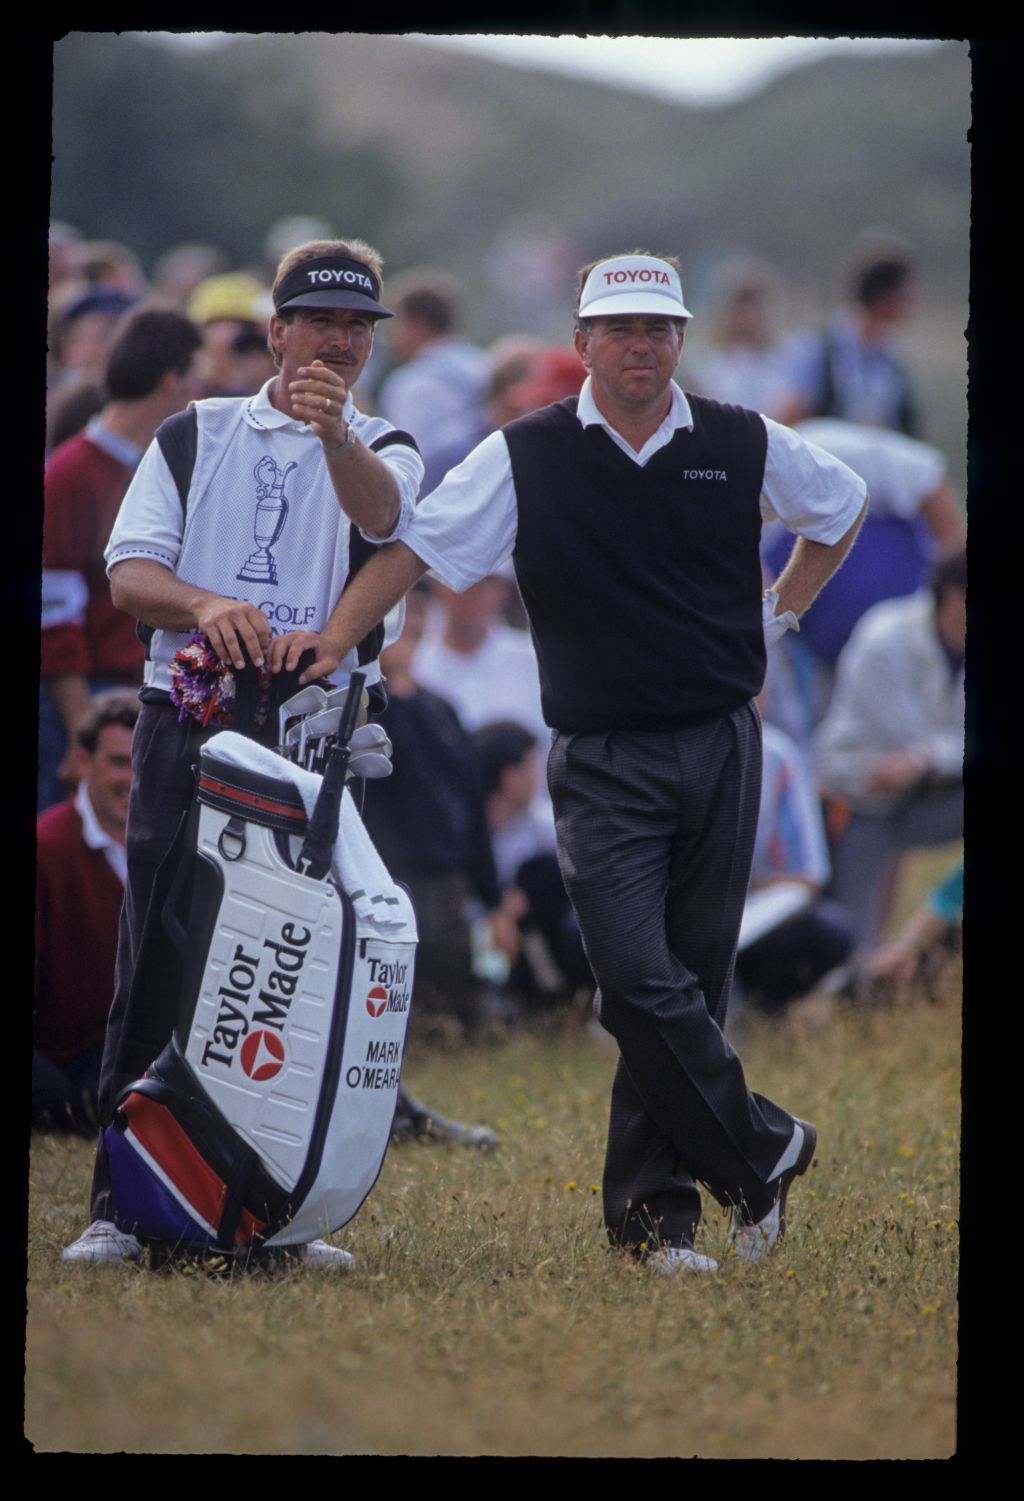 Mark O'Meara and his caddie considering their options in the rough during the 1991 Open Championship